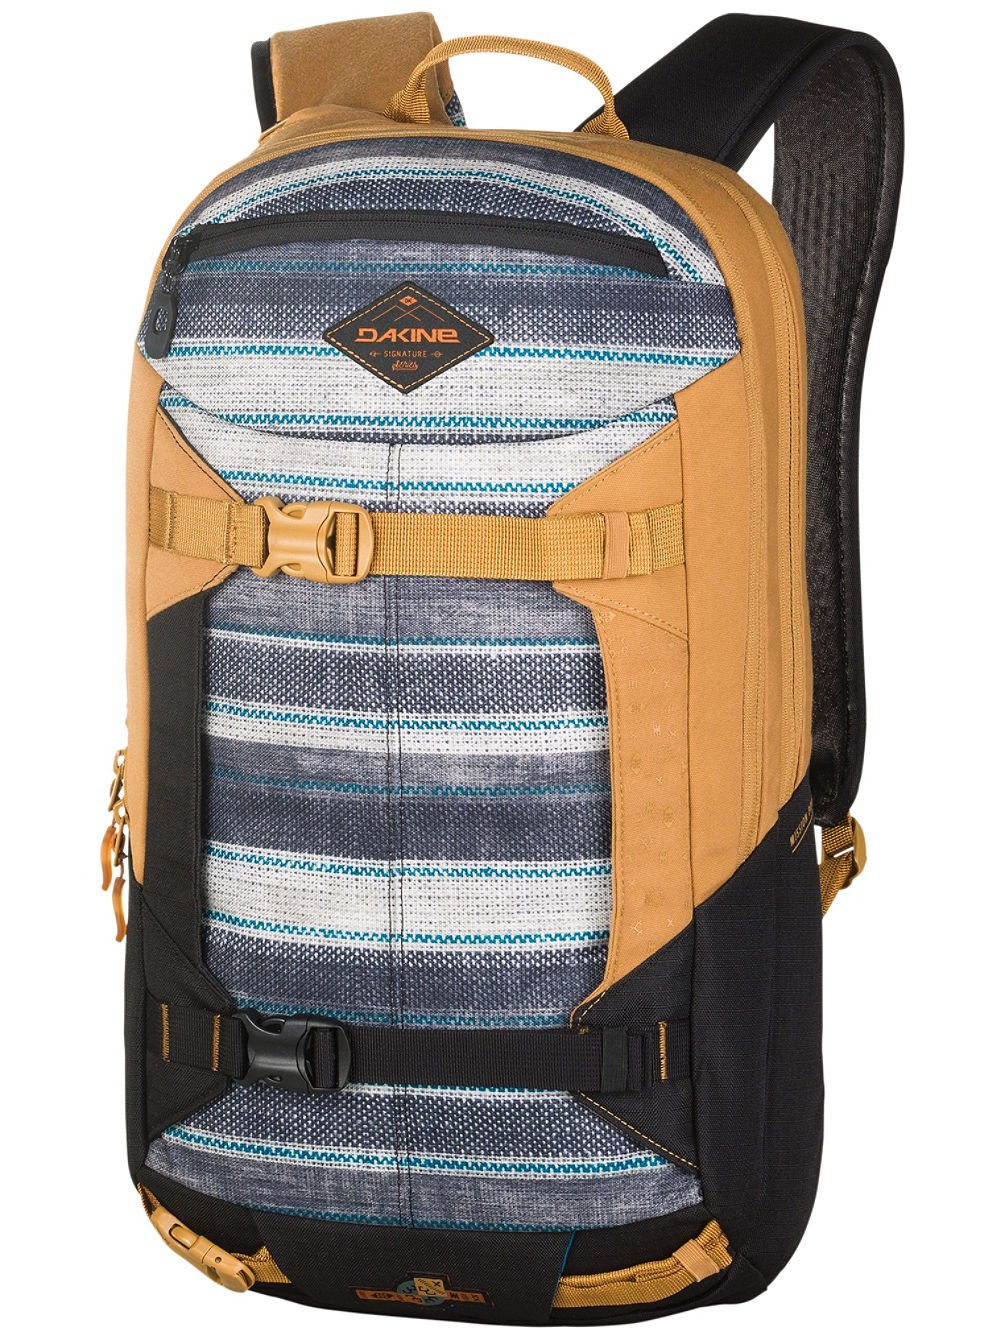 Team Mission Pro 18L Backpack